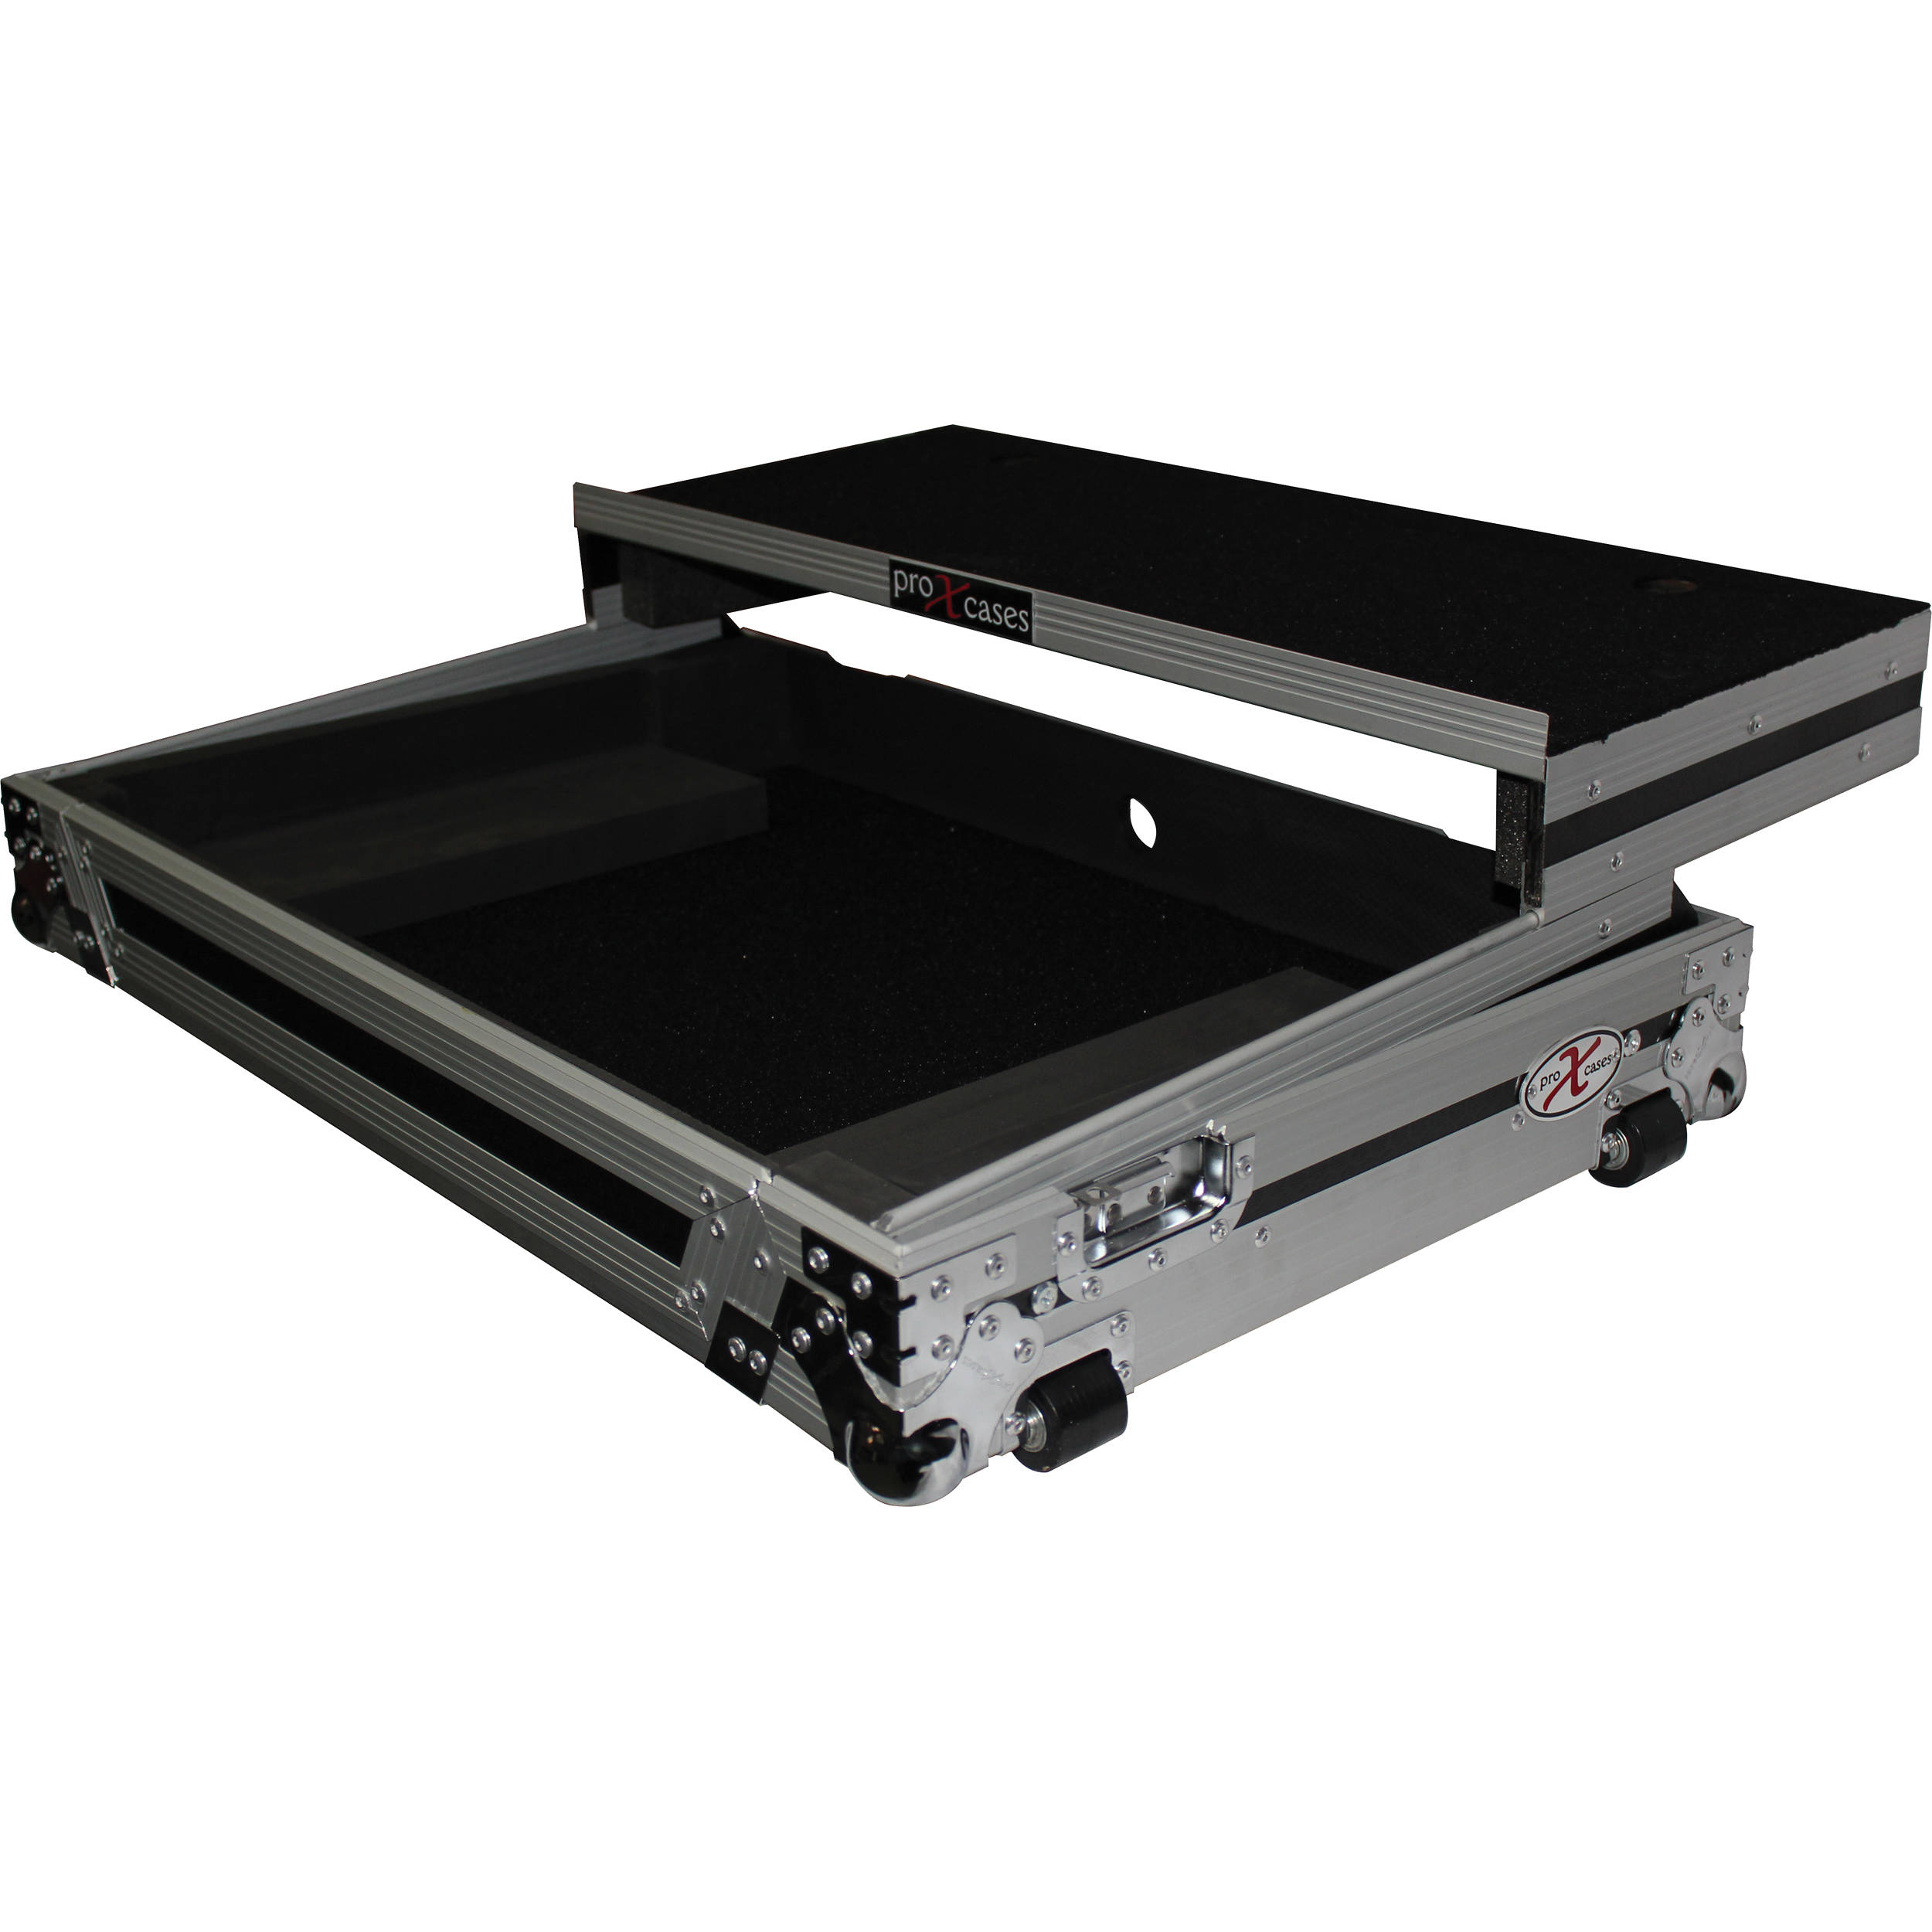 prox flight case for pioneer ddj sx ddj sx2 xs ddjsx wlt. Black Bedroom Furniture Sets. Home Design Ideas